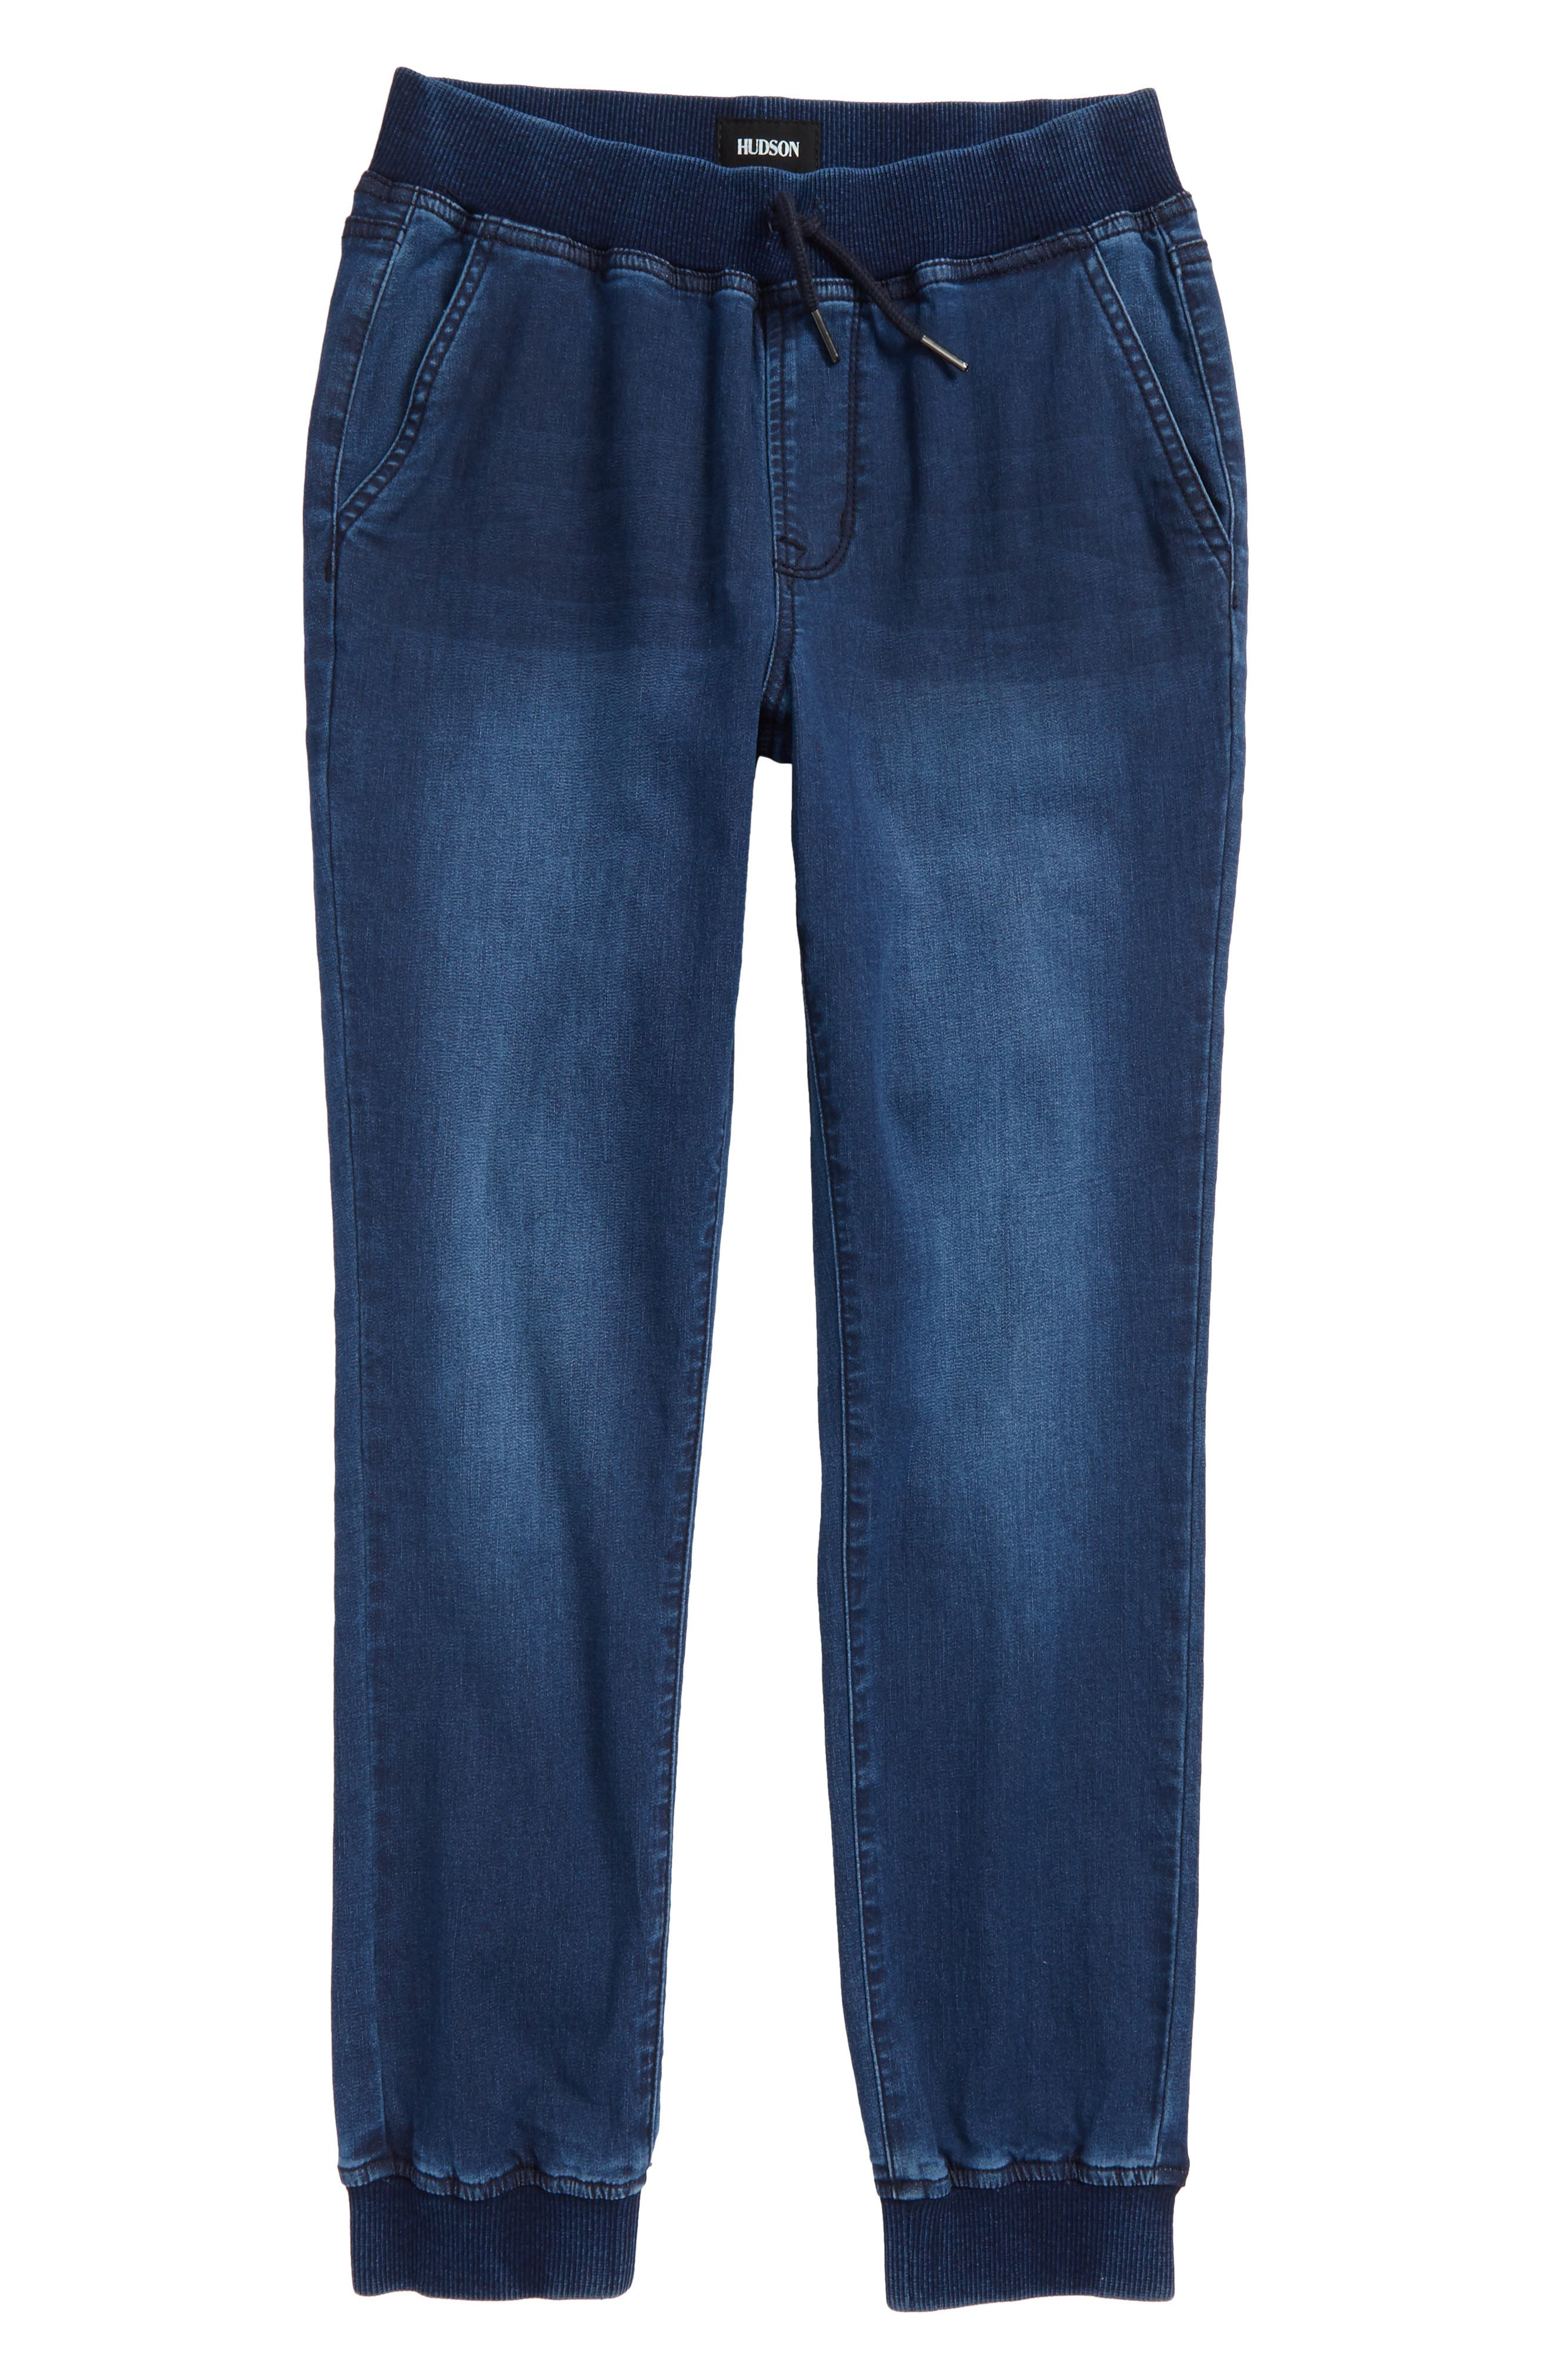 Nate Denim Jogger Pants,                             Main thumbnail 1, color,                             470